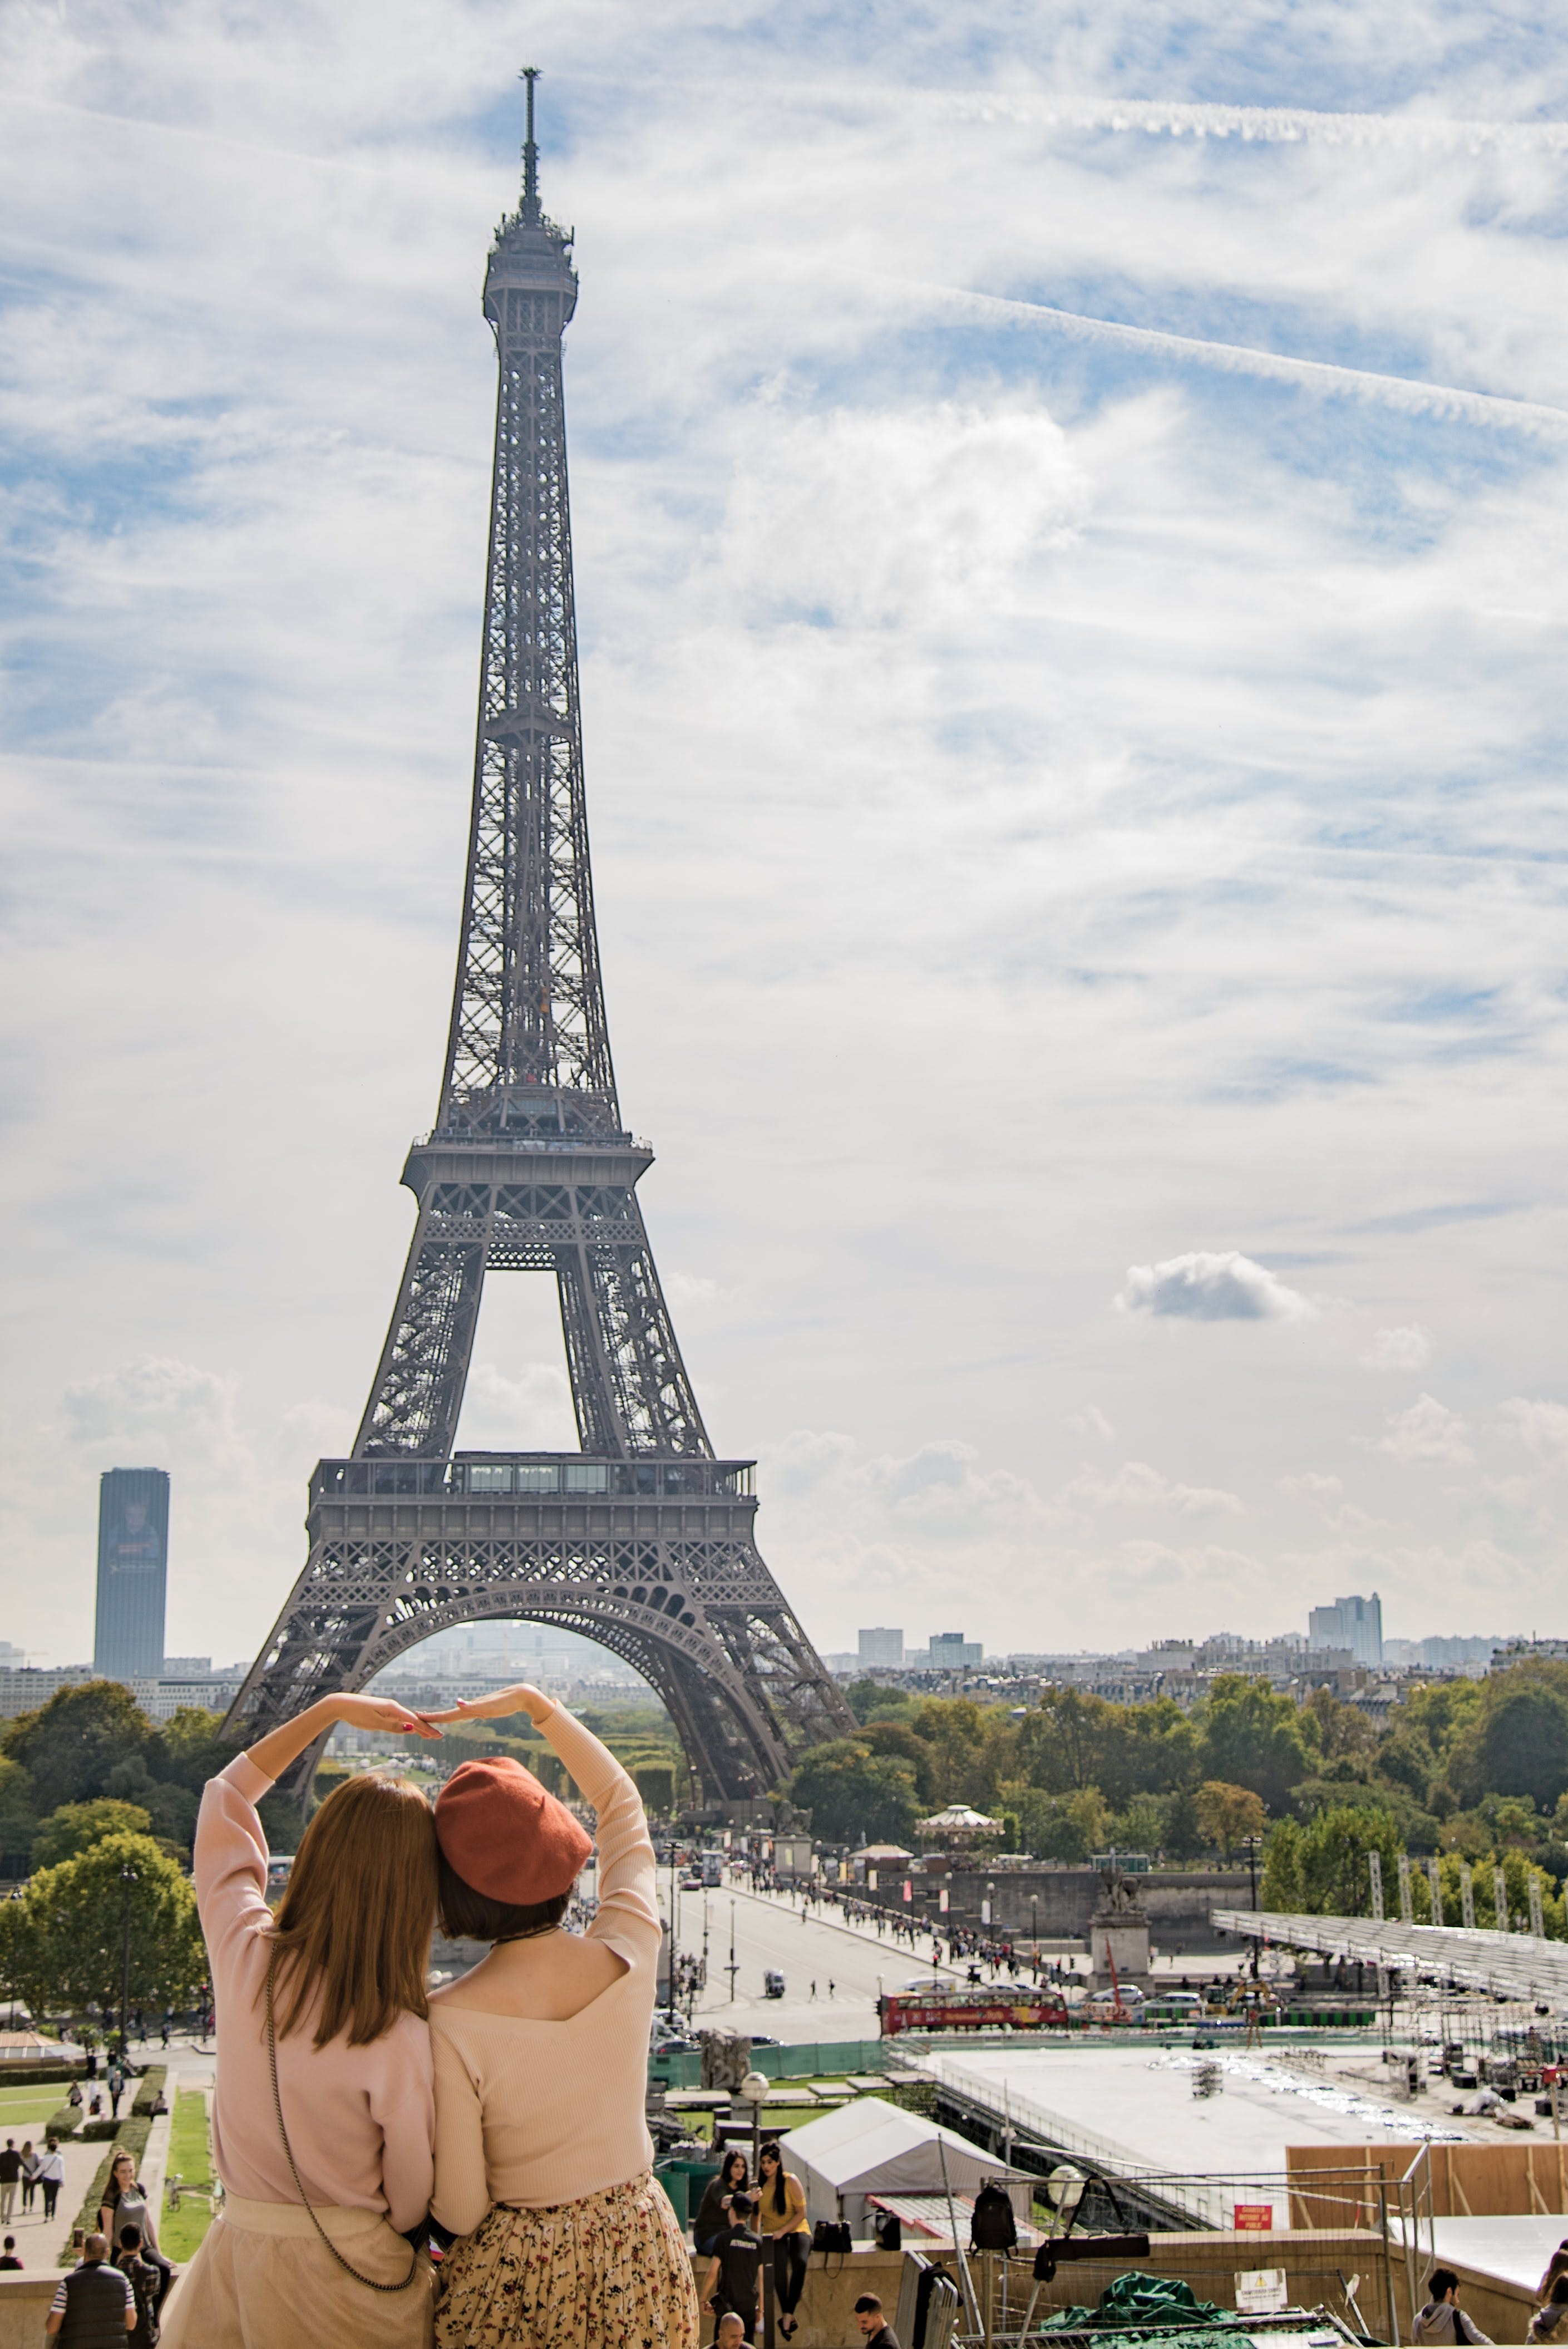 Photo of Two Women Posing in Front of Eiffel Tower, Paris, France during Day Time